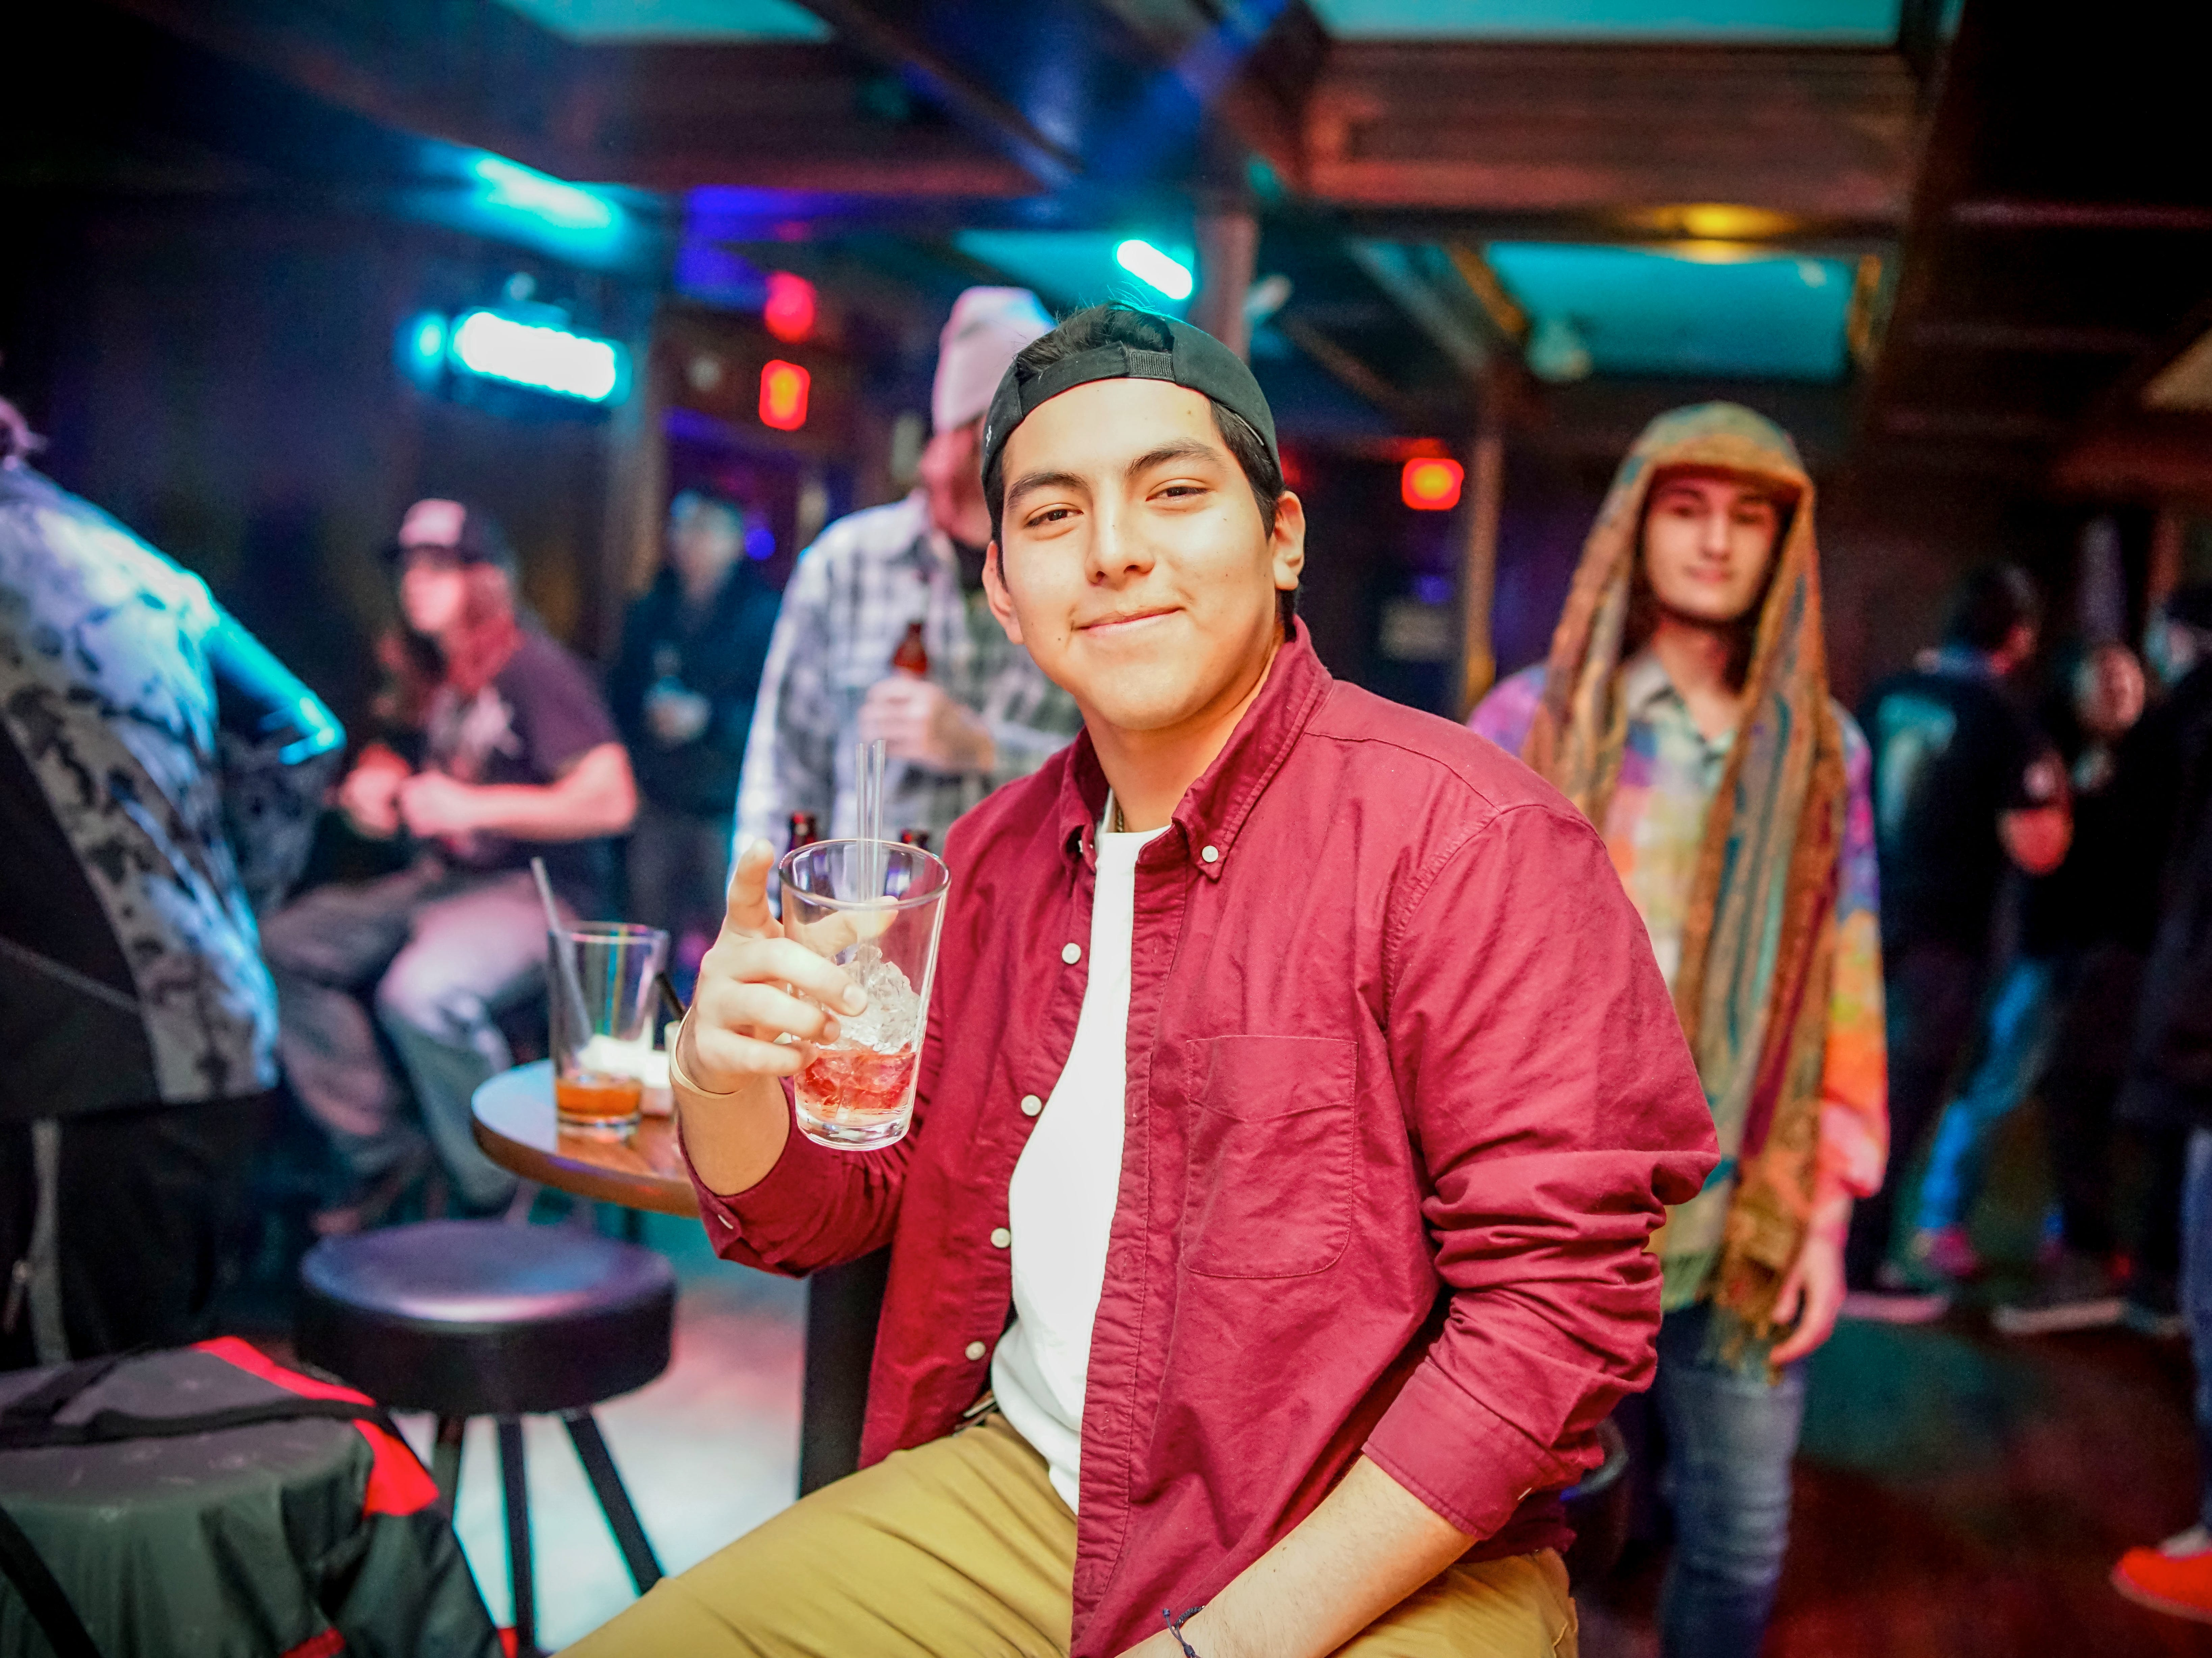 Alex Sanchez, 21, of Des Moines, having a fun time, Friday, December 28th, at Heroes.